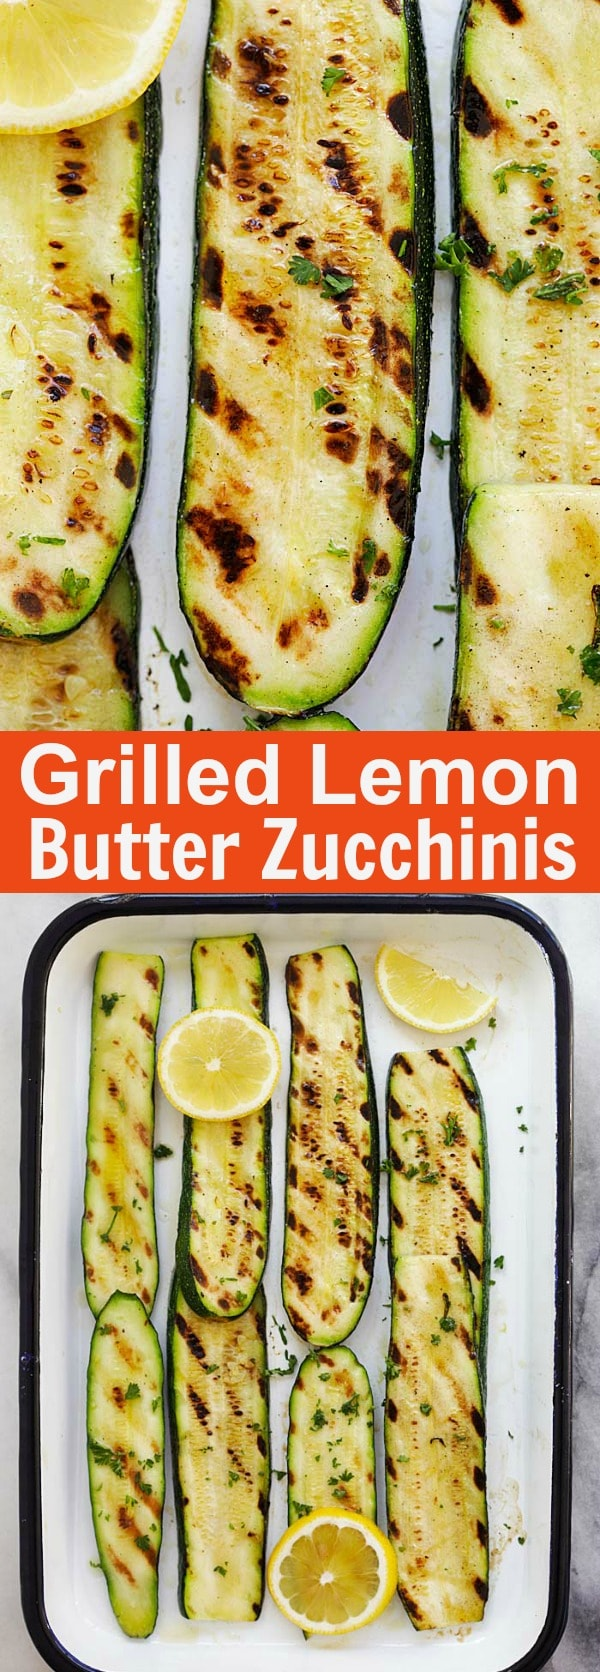 Grilled Lemon Butter Zucchini – the freshest and juiciest grilled zucchini ever, with lemon butter and herb. This summer staple is a crowd pleaser | rasamalaysia.com